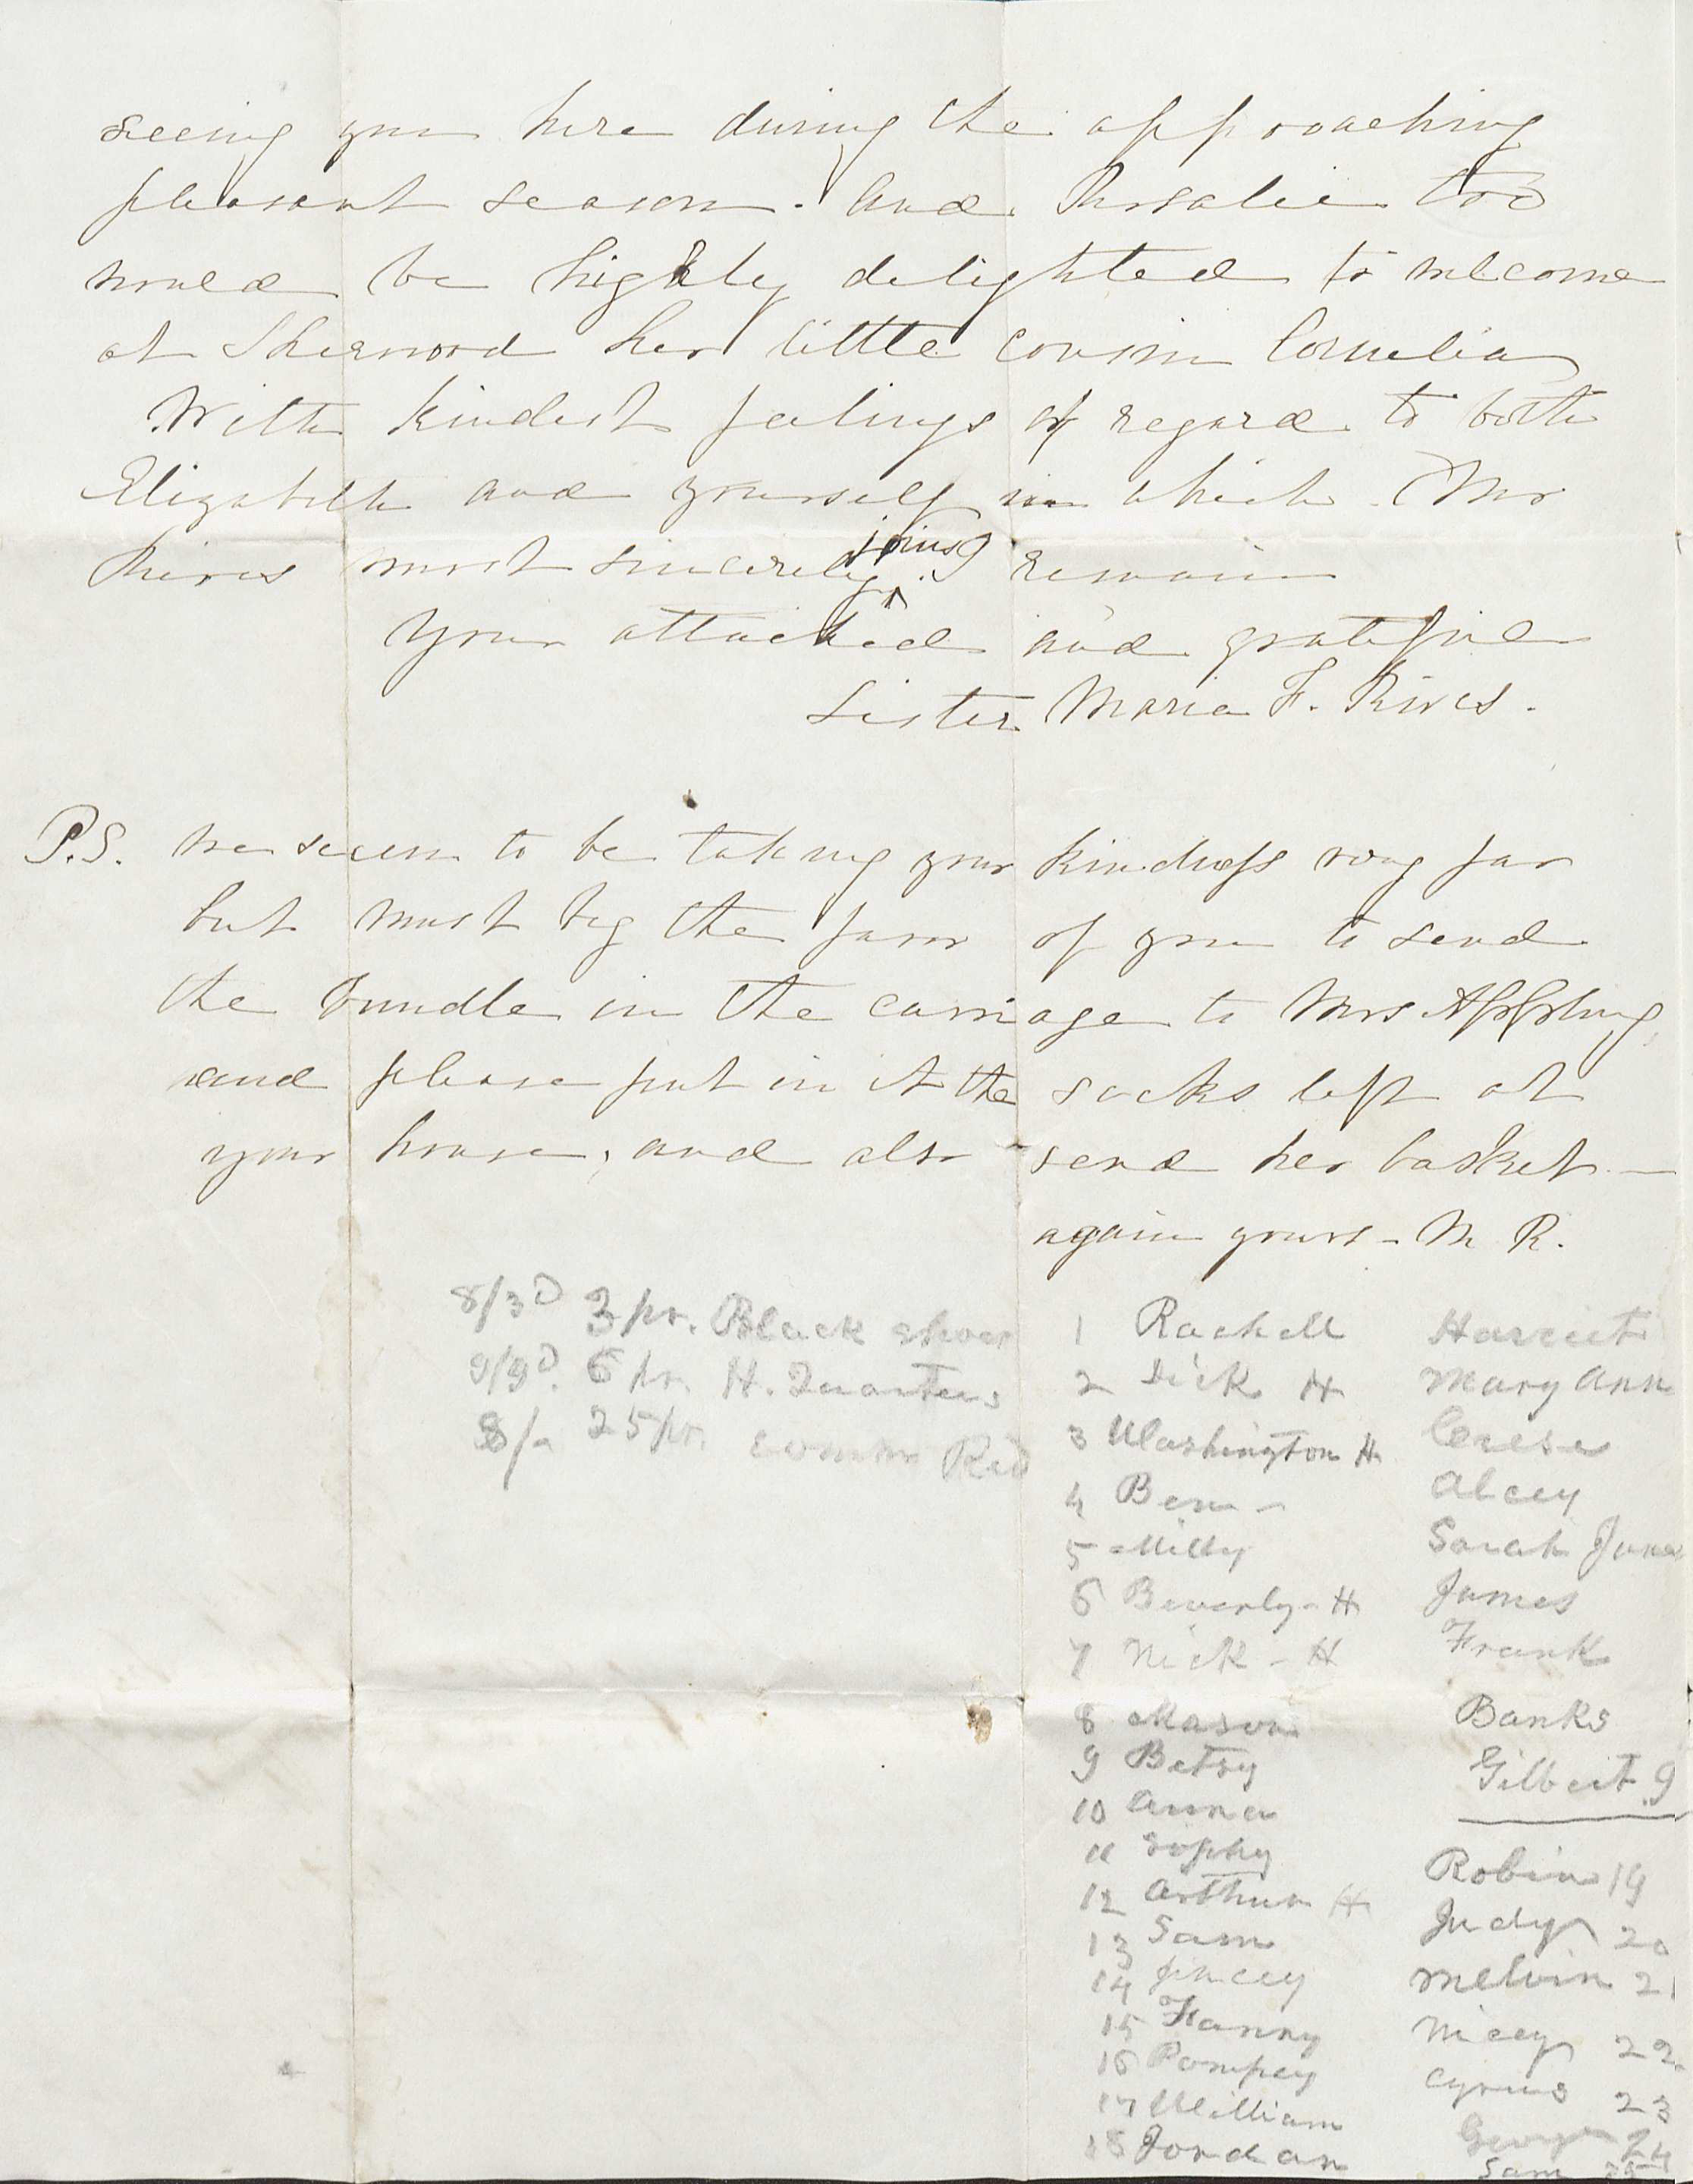 March 24, 1851 letter to Robert Rives Jr.  from his sister- in- law, Maria Rives.  In the letter Maria writes about a recent visit to Rives and his family at their home called Oakland,  and the declining health of his brother George.  The contents of the letter has no connection to the list found at the bottom of page two. Rives uses the bottom of the page as scratch paper to list the names of 34 of his slaves and supplies purchased for them. The number 22 on the list is my great-great grandmother, Nicey Ann Coles. (Image by Regina Rush)